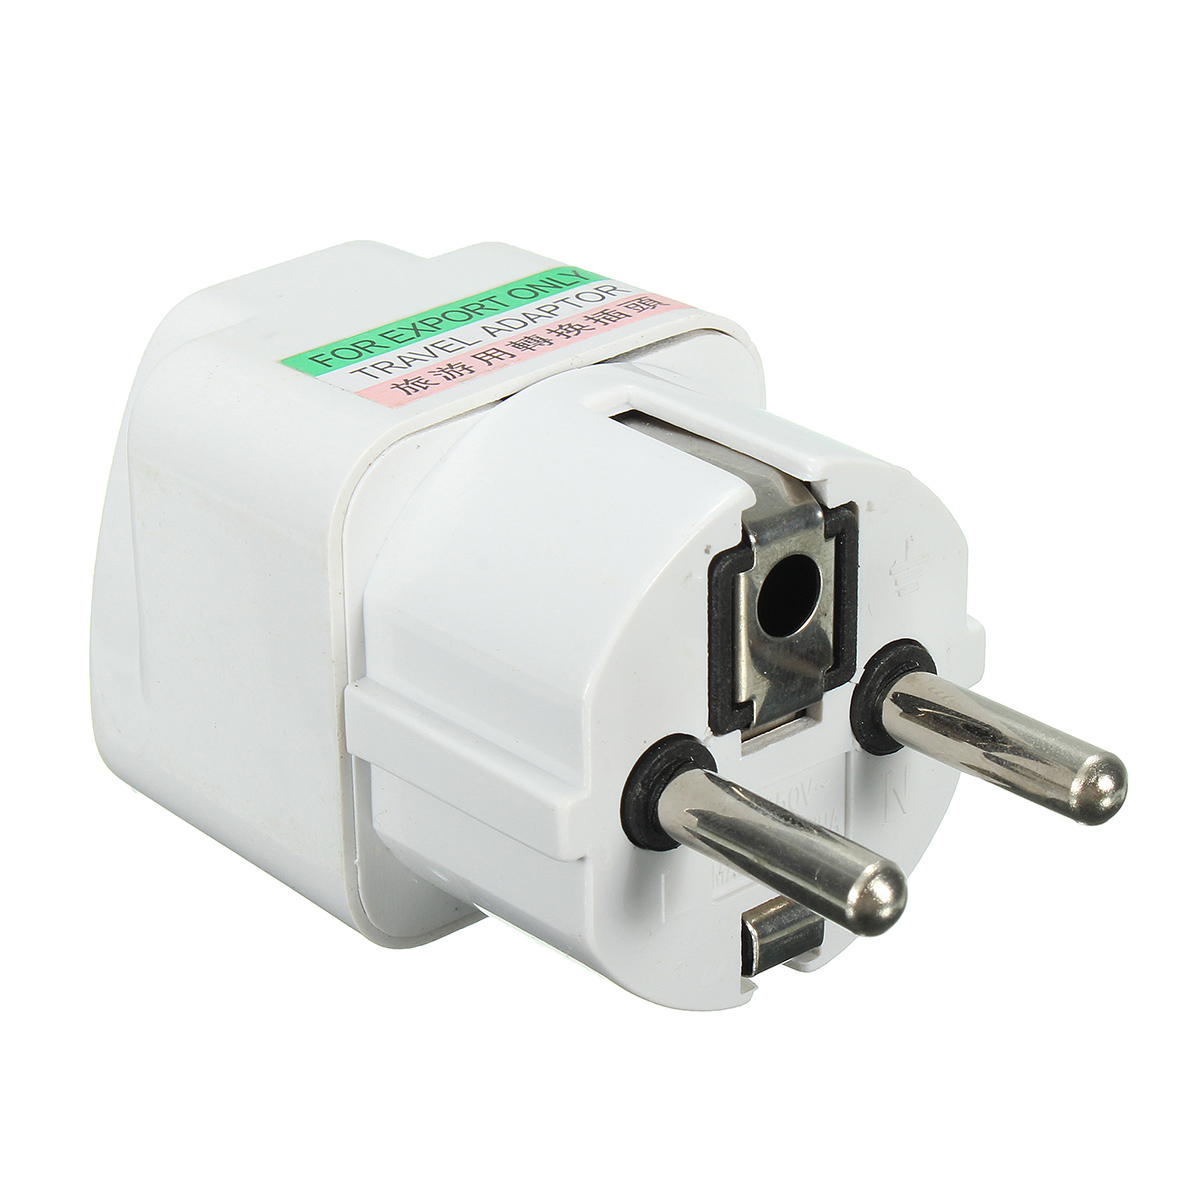 AC 250V 10A Universal UK US AU to EU Travel Power Adapter Wall Plug Converter White